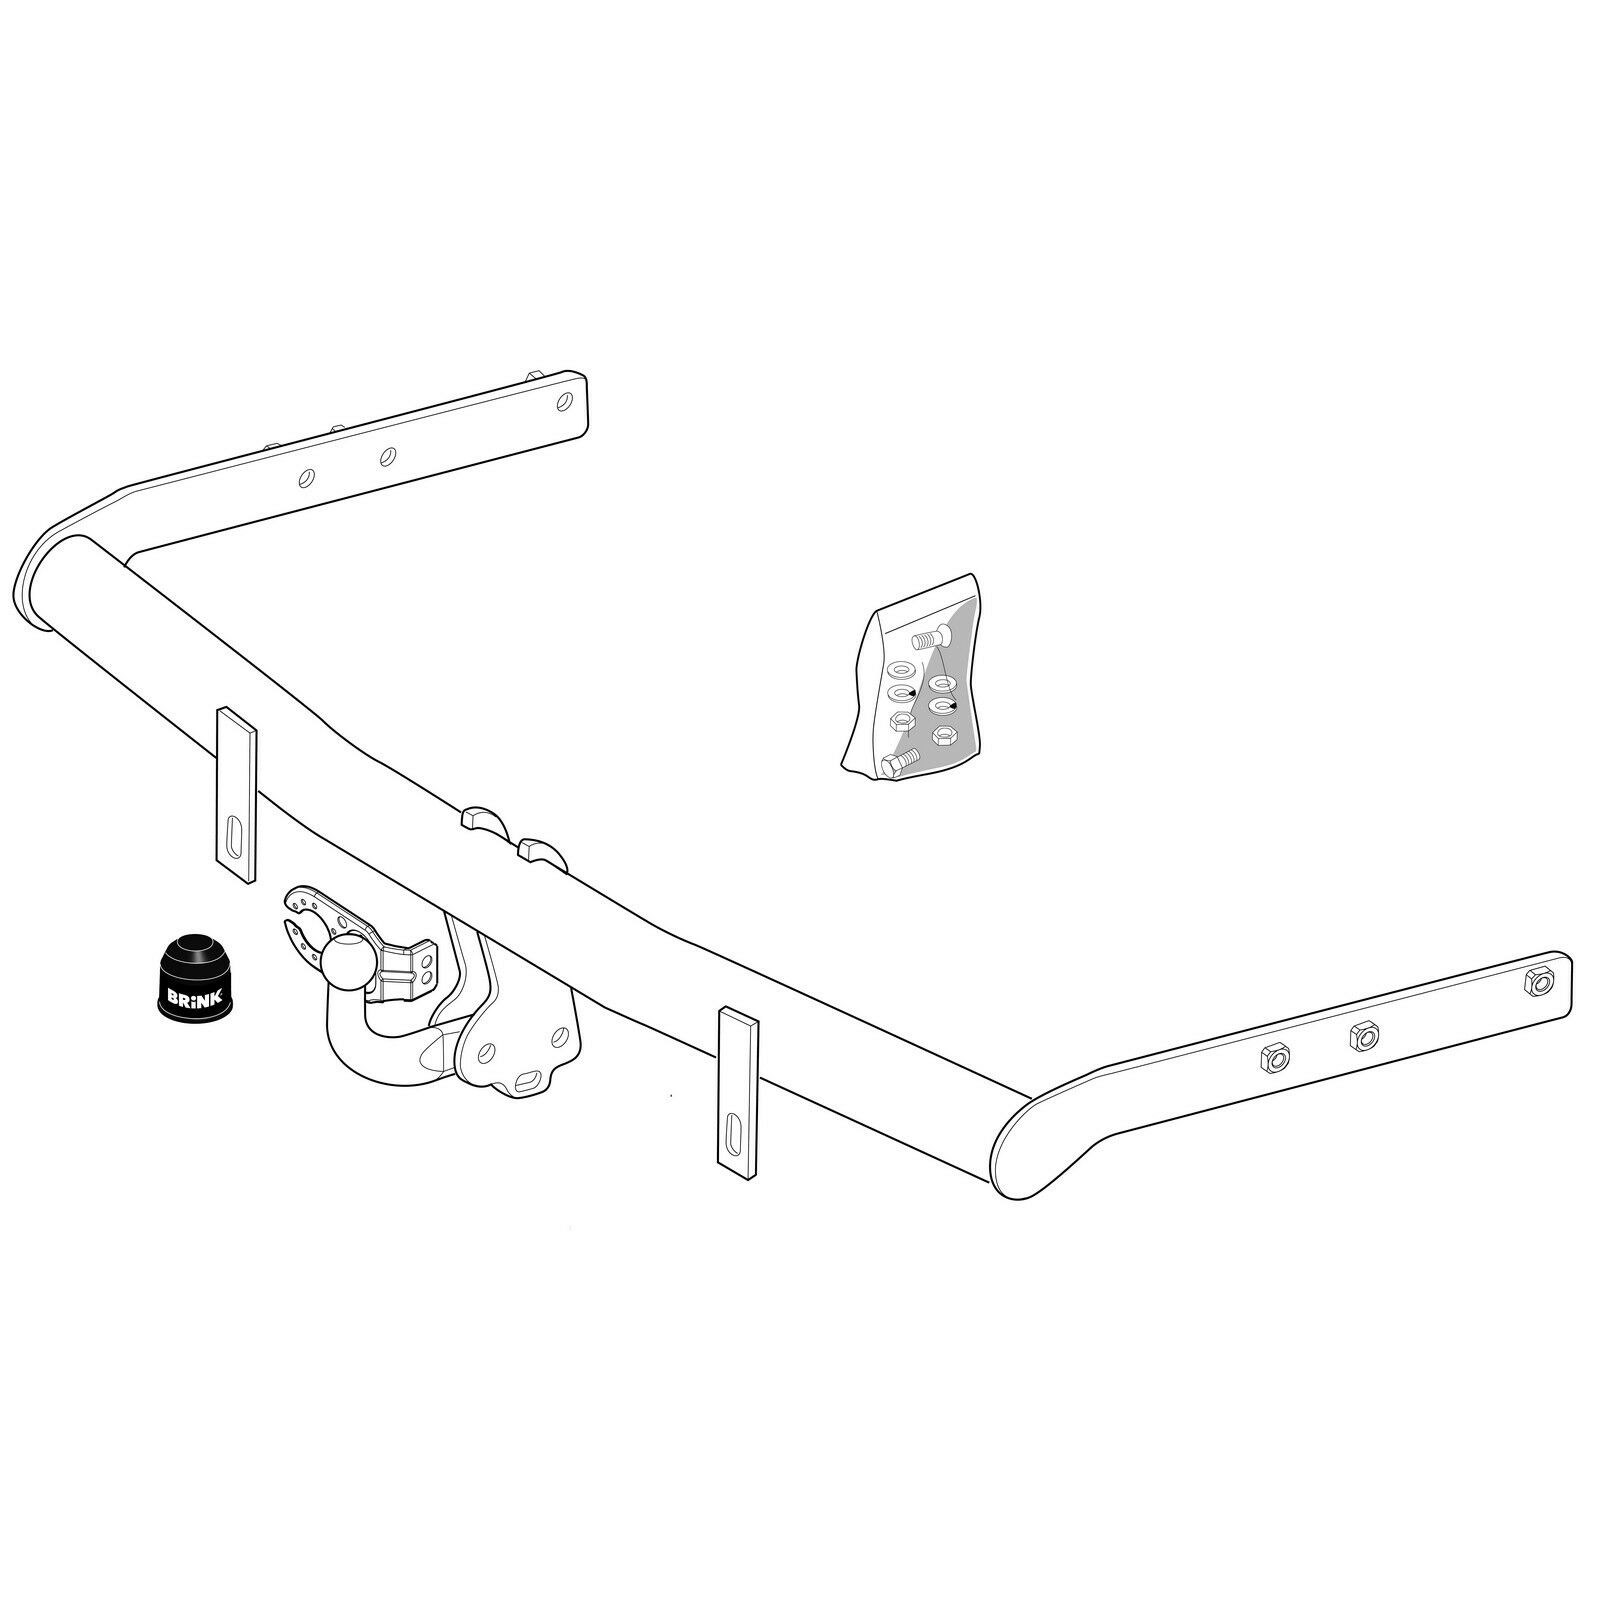 Flange Tow Bar Towbar for Seat Alhambra MPV 2000-2010